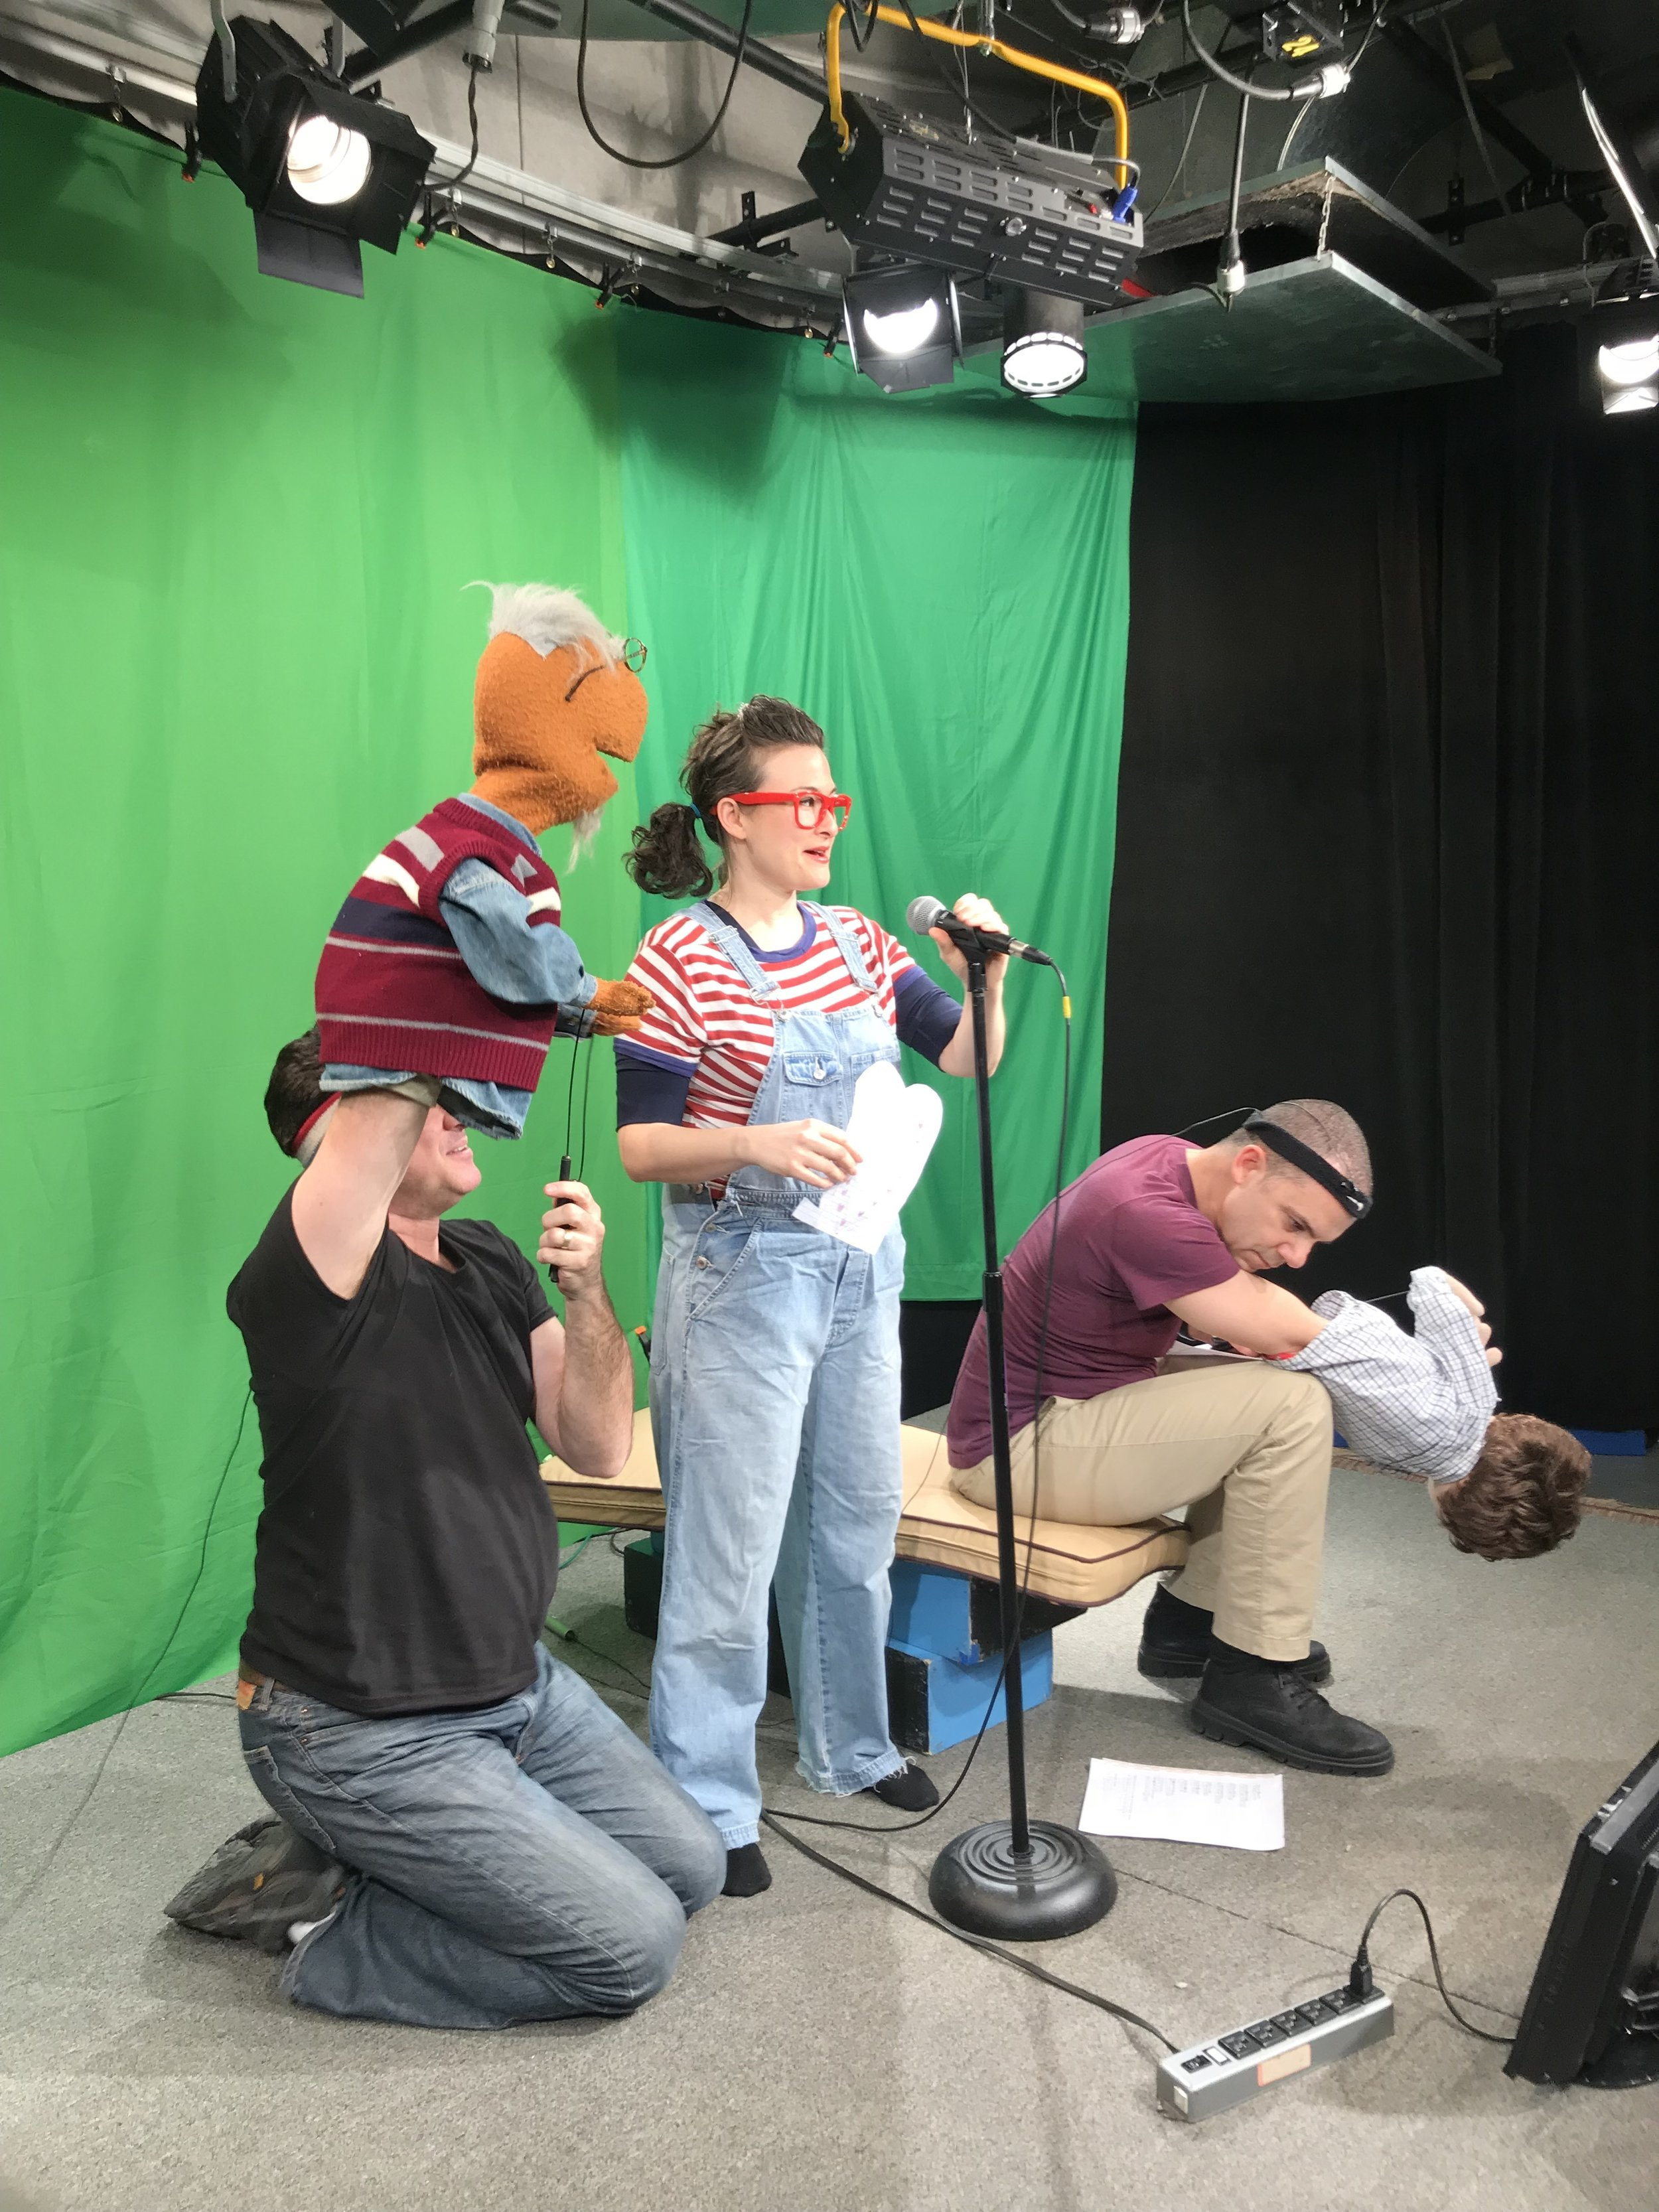 Puppet comedy magic with L to R - Grandpa (Josh Cohen), Sally (Tamra Malaga) and Victor (Paul McGinnis)